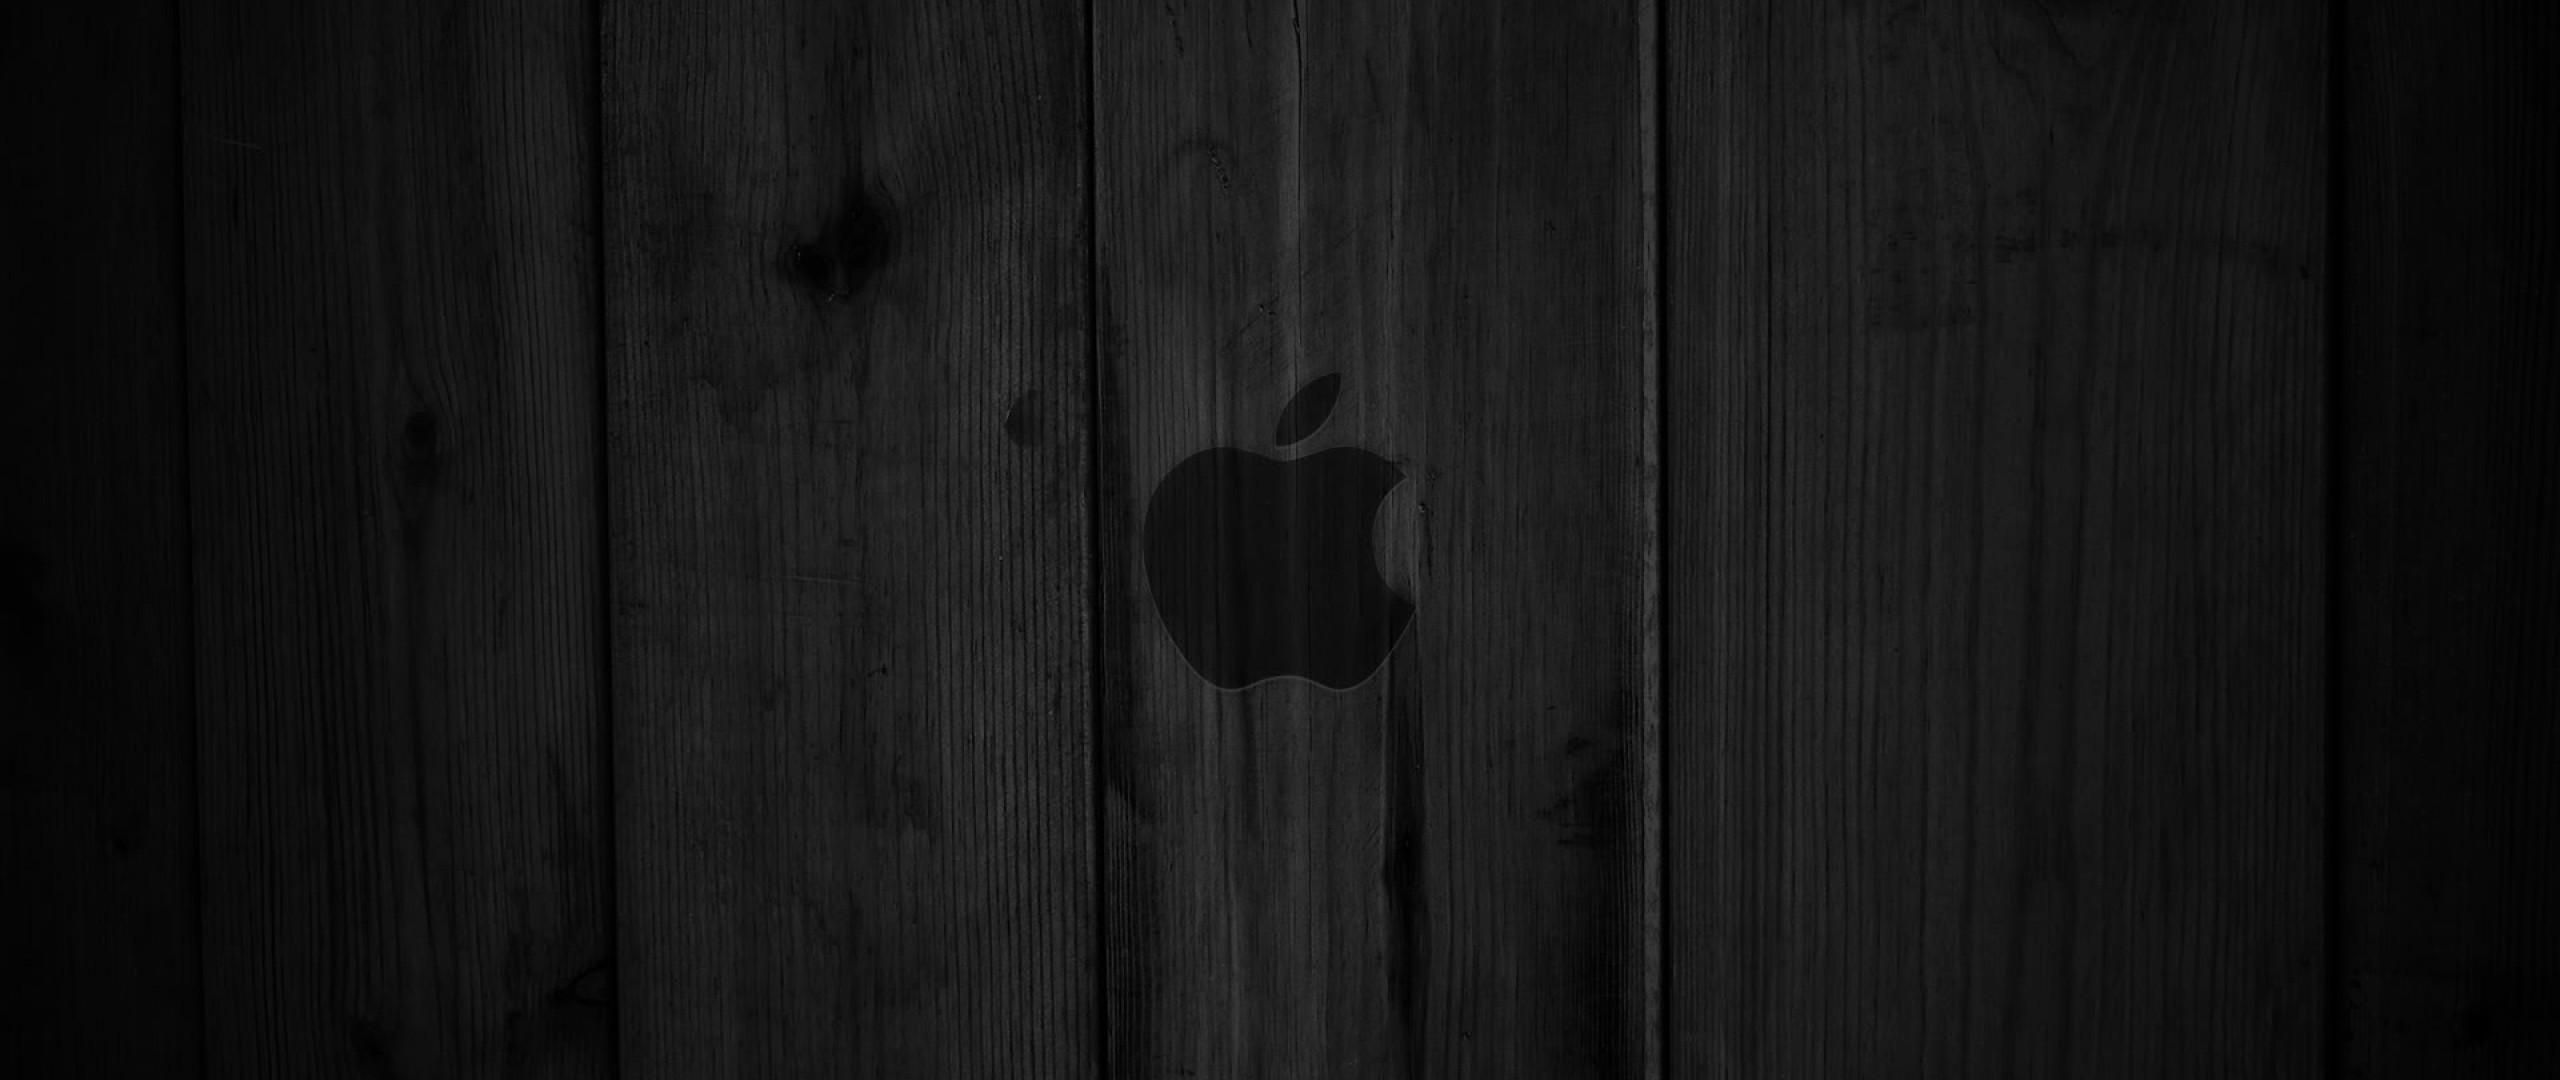 2560x1080  Wallpaper wood, dark, lines, background, apple, mac